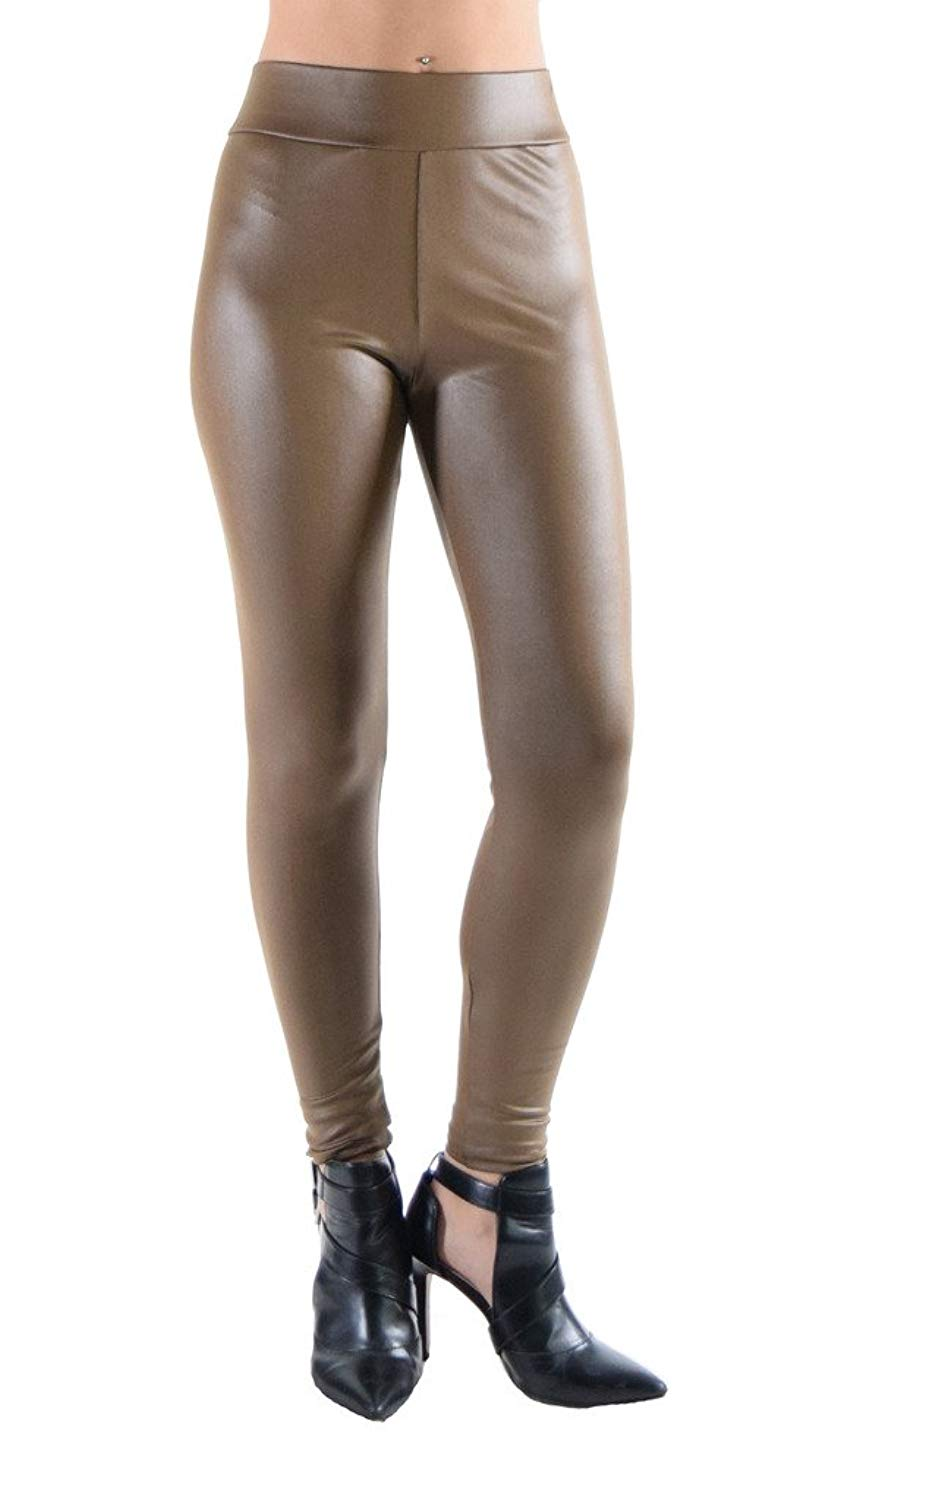 1ad2f36bbe97b Cheap Green Wet Look Leggings, find Green Wet Look Leggings deals on ...